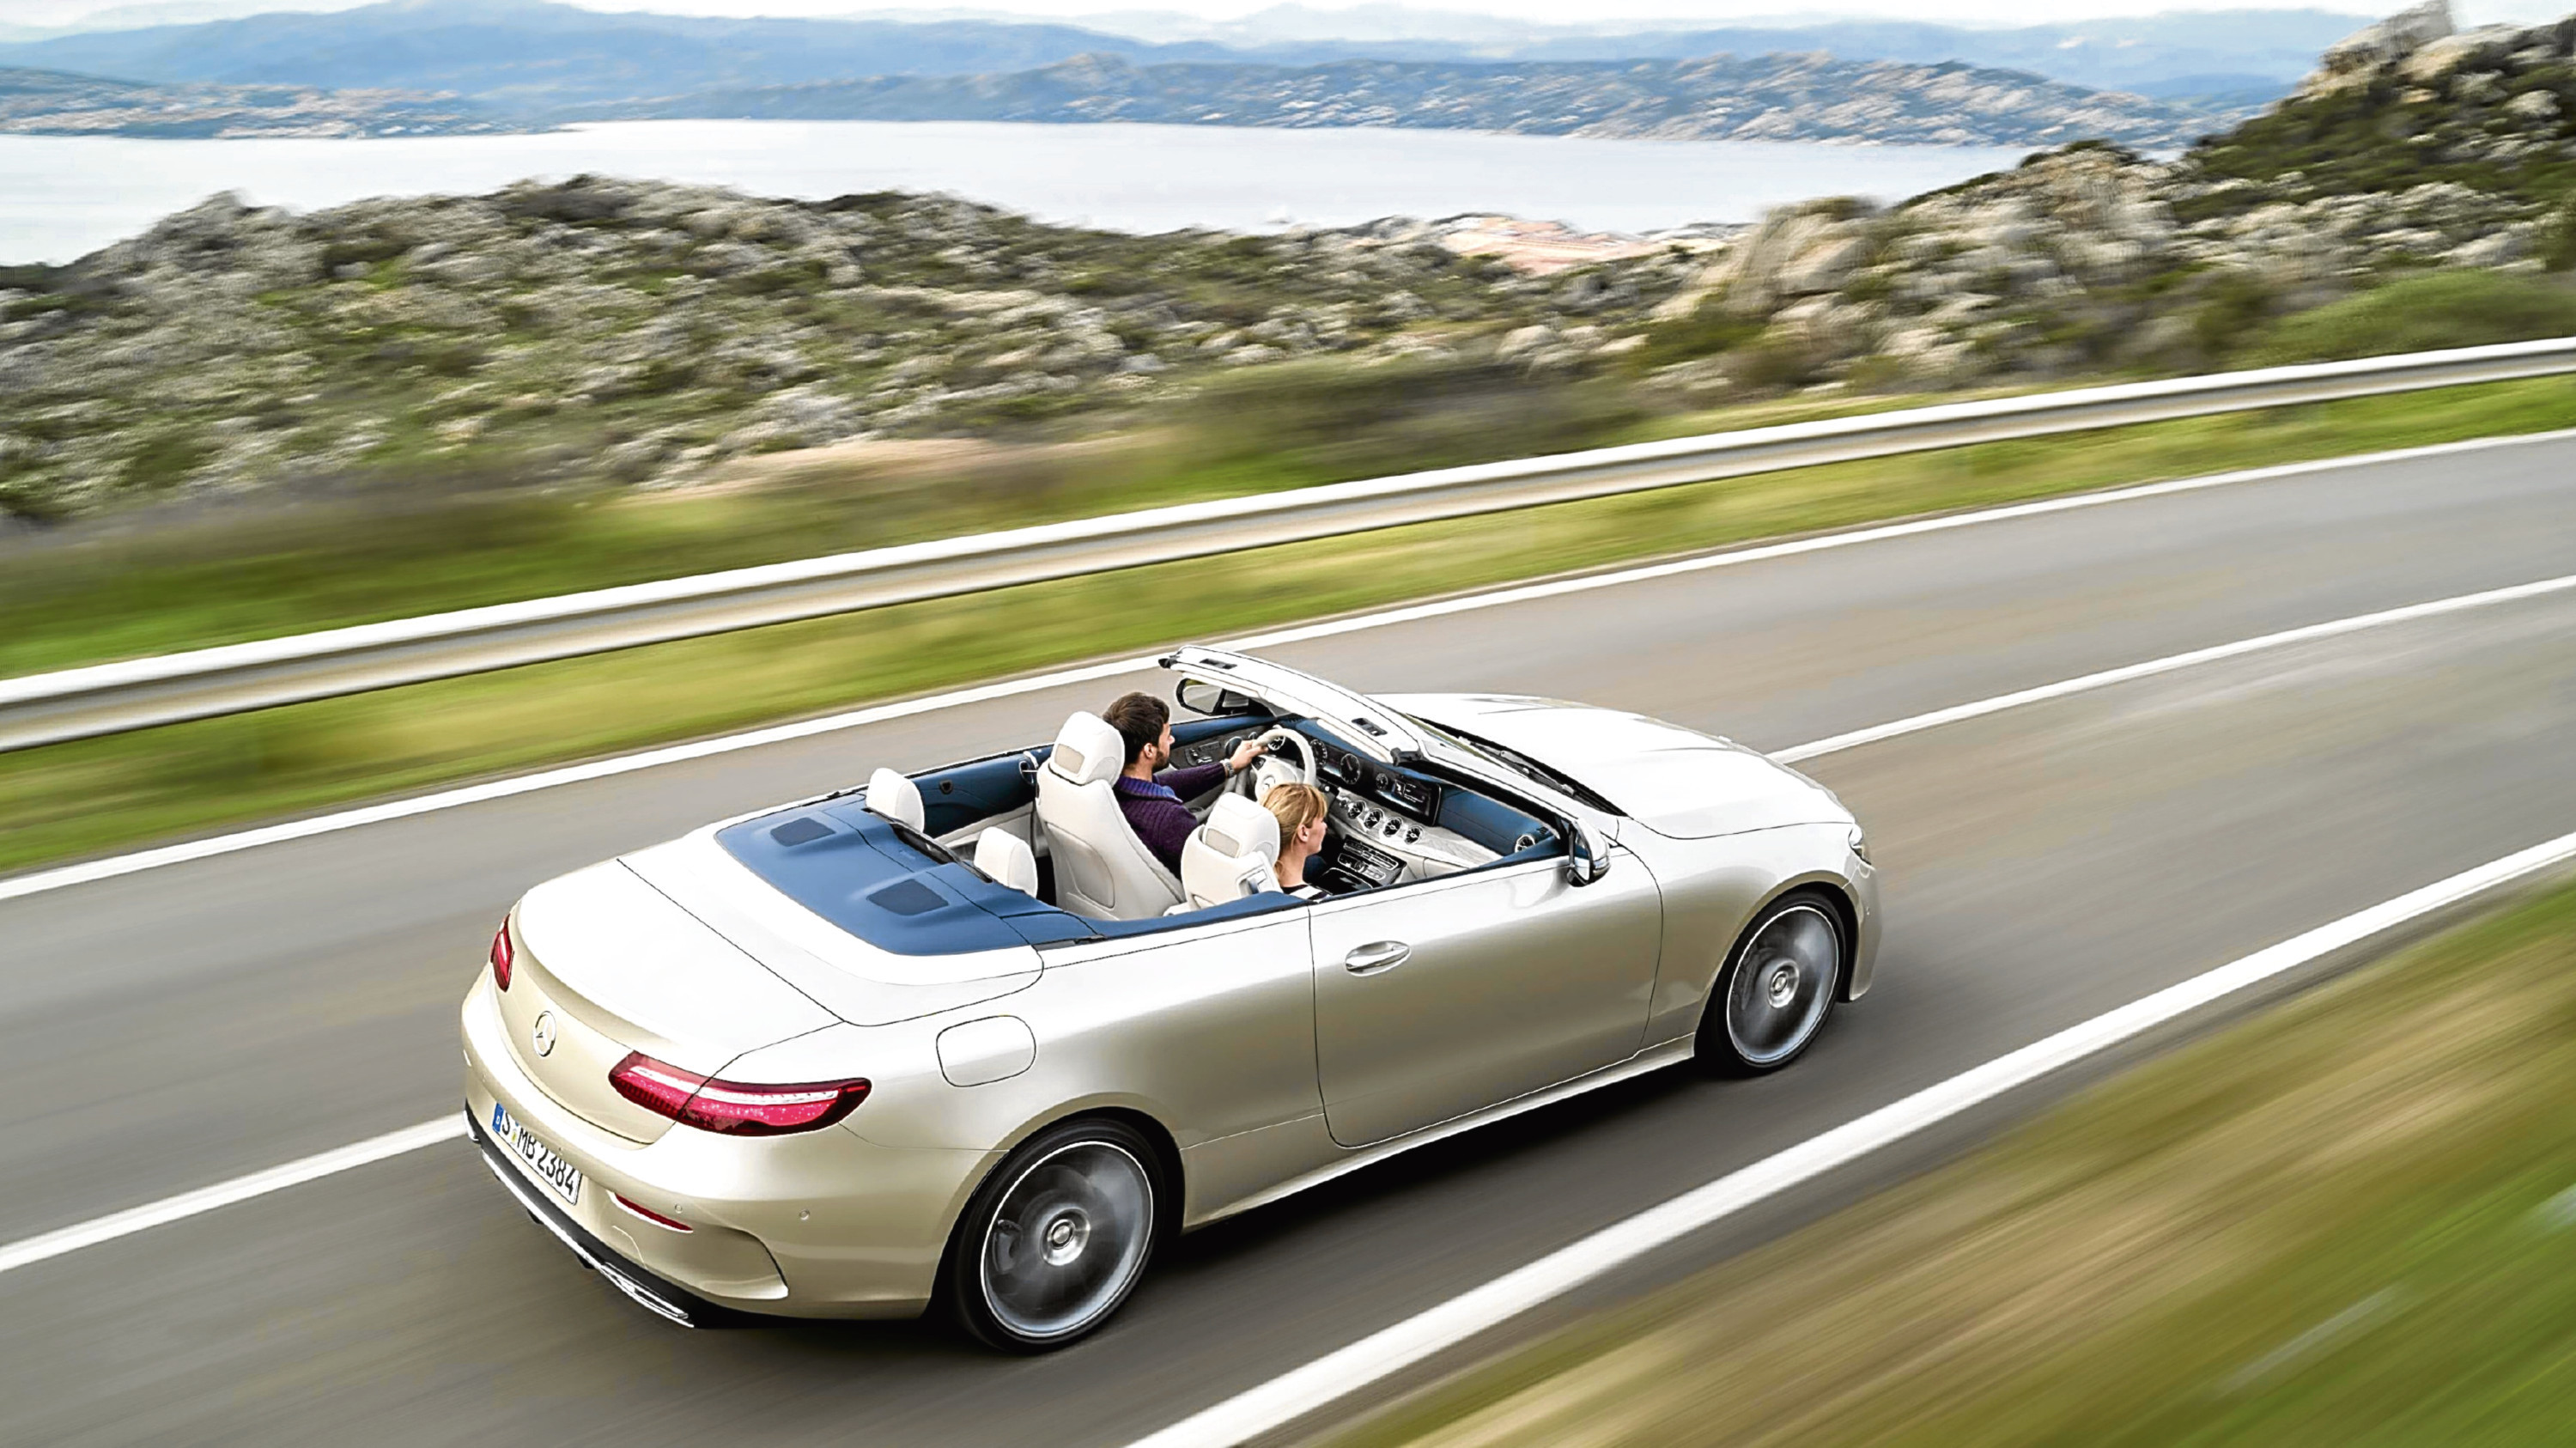 Undated Handout Photo. The Mercedes E-Class line-up is bolstered with All-Terrain and Cabriolet models. See PA Feature MOTORING News. Picture credit should read: PA Photo/Handout. WARNING: This picture must only be used to accompany PA Feature MOTORING News.